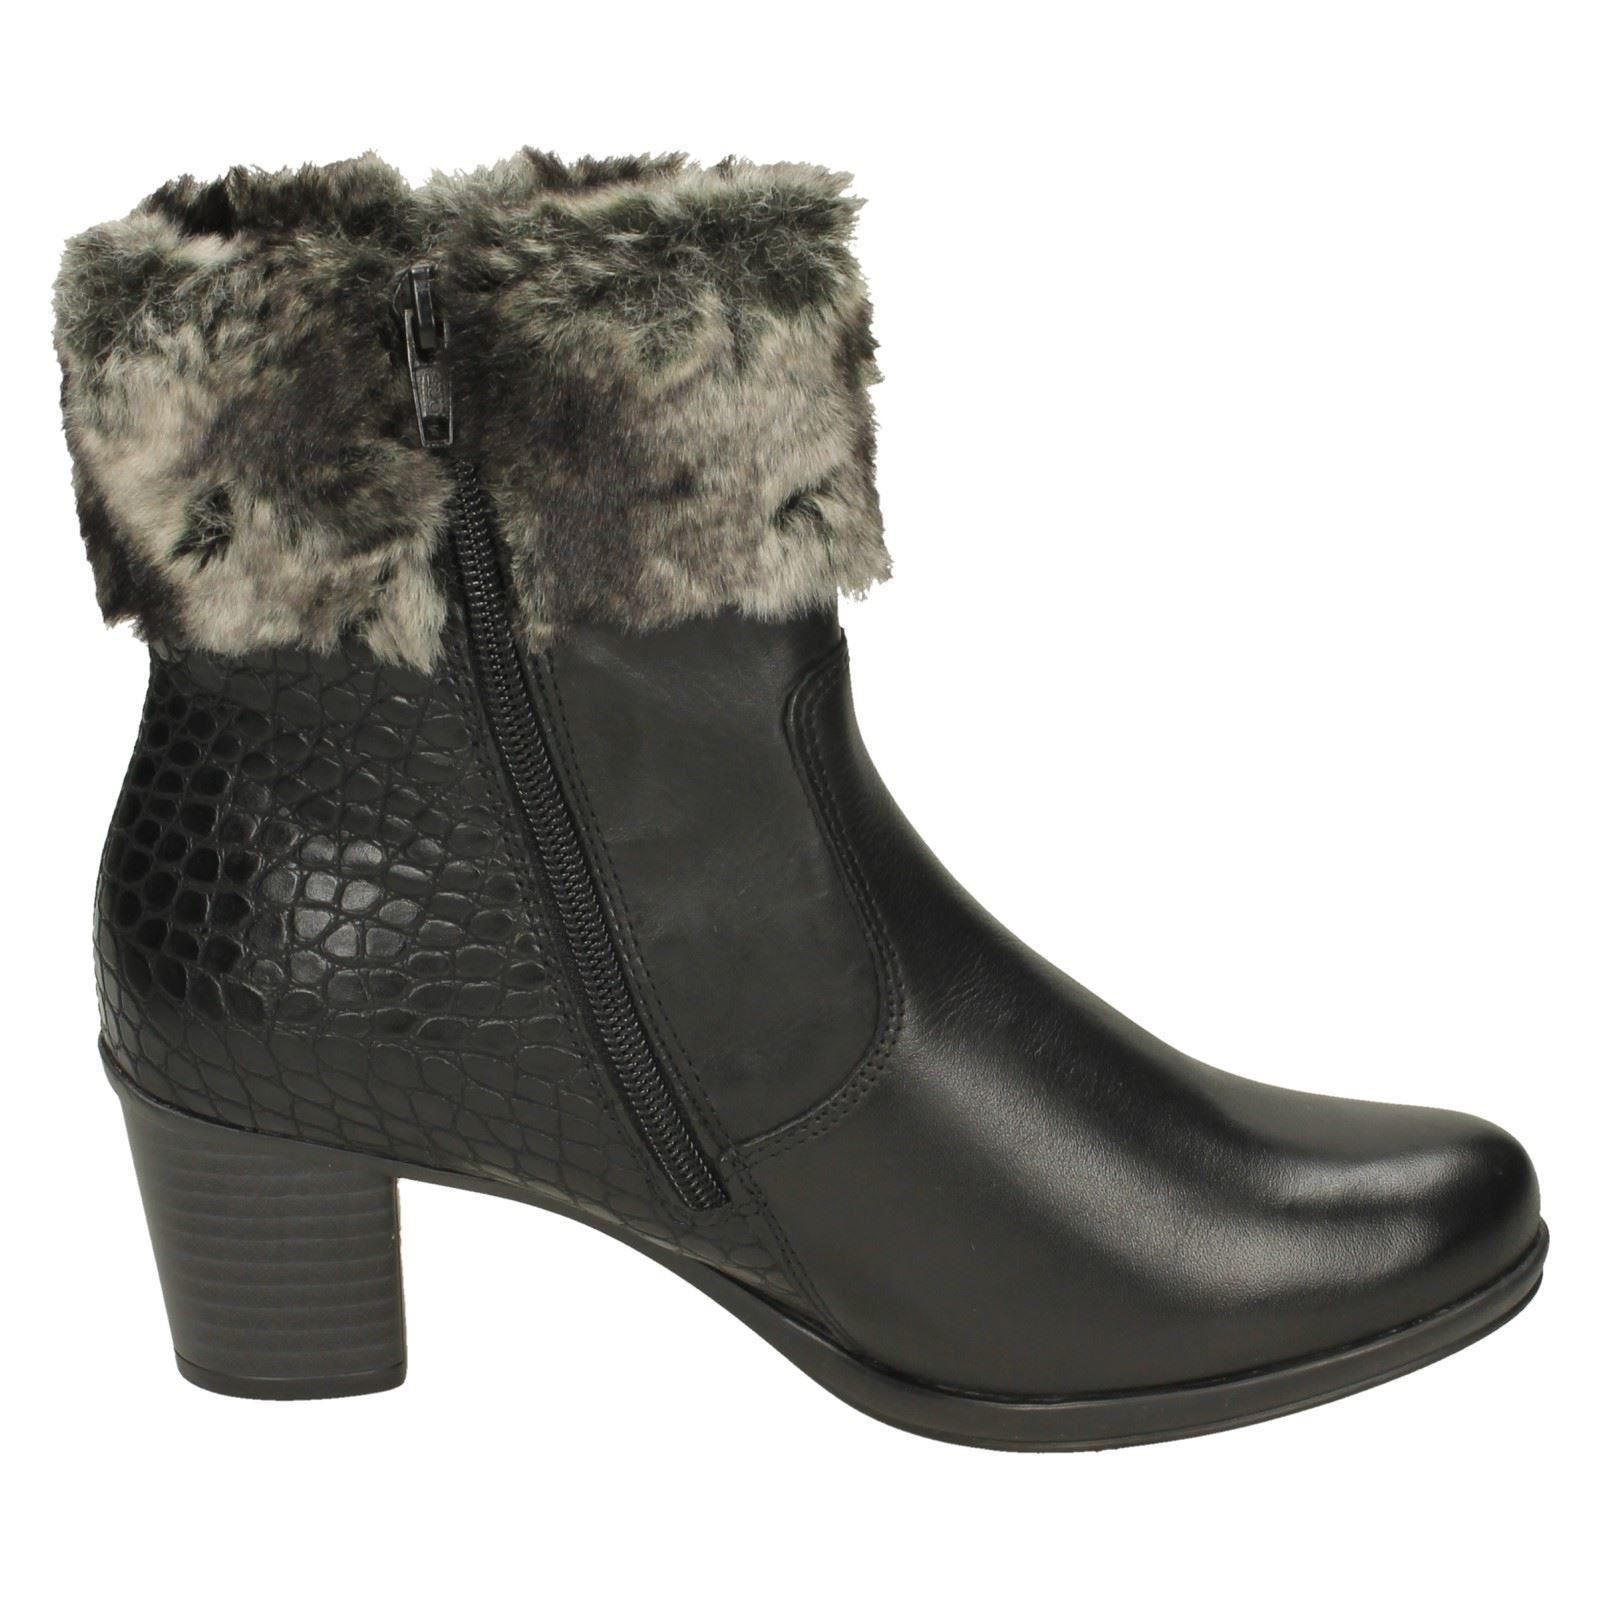 Ladies Remonte R1585 Faux Fur Cuff Ankle Ankle Ankle Boots e7fc28